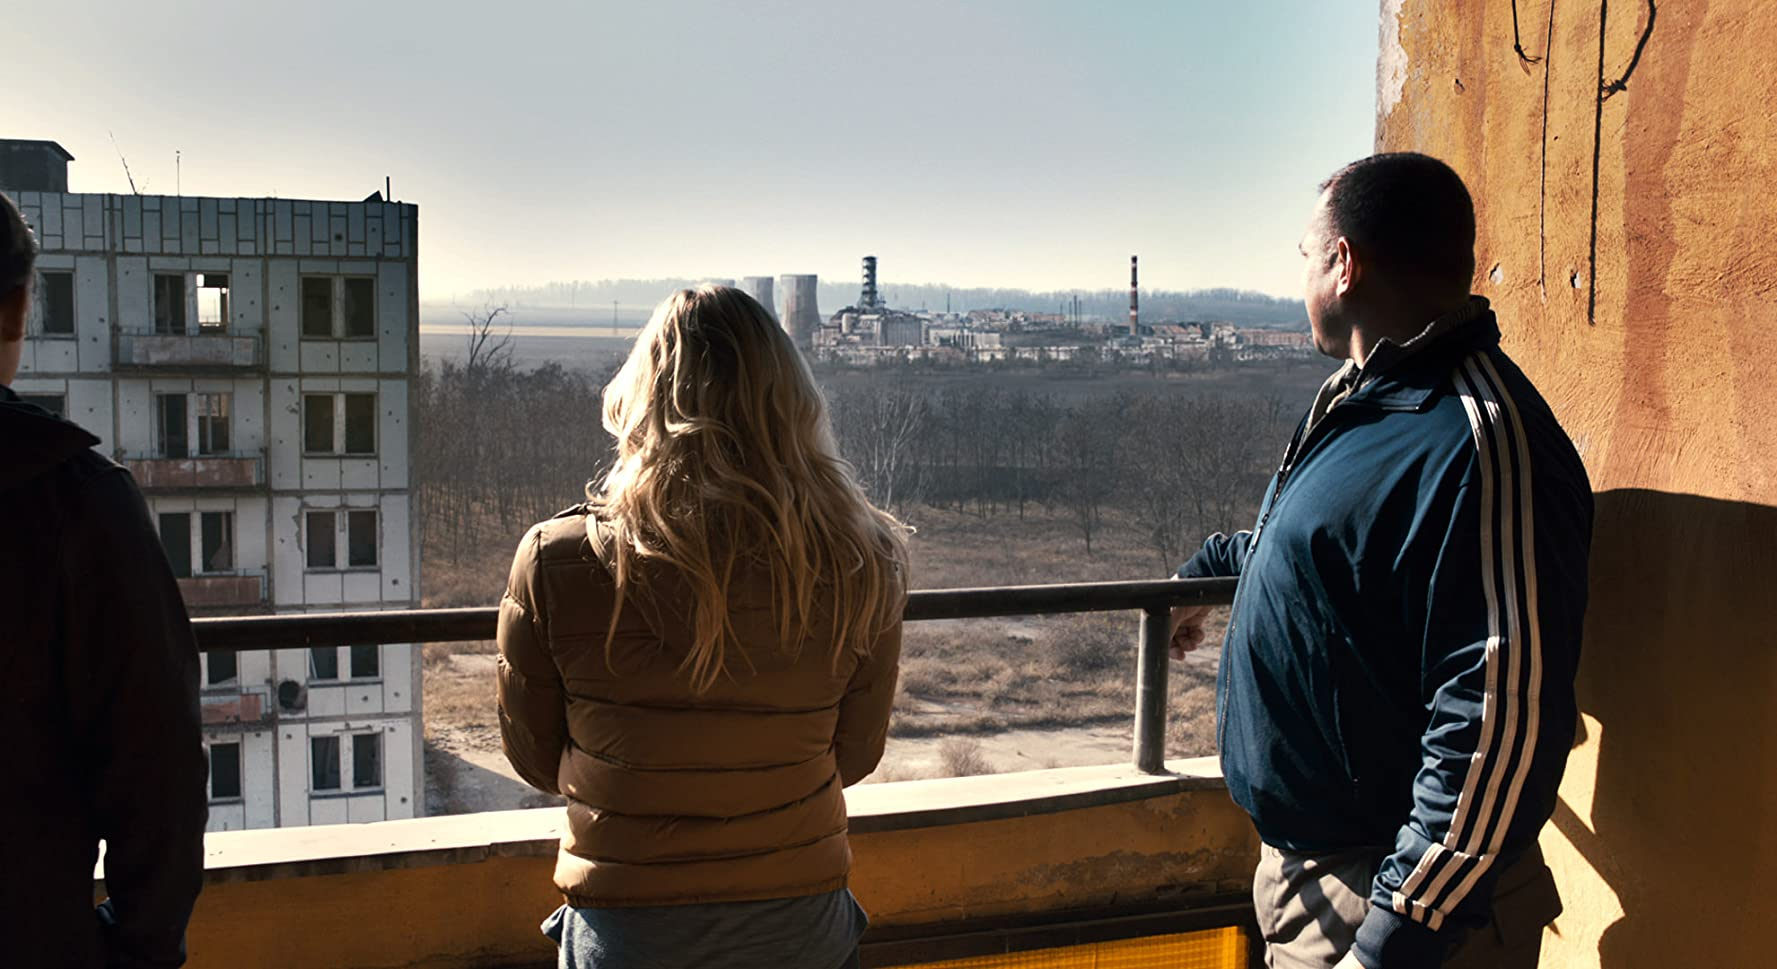 Olivia Taylor Dudley and Dimitri Diatchenko looking out at the Chernobyl Reactor in Chernobyl Diaries (2012)